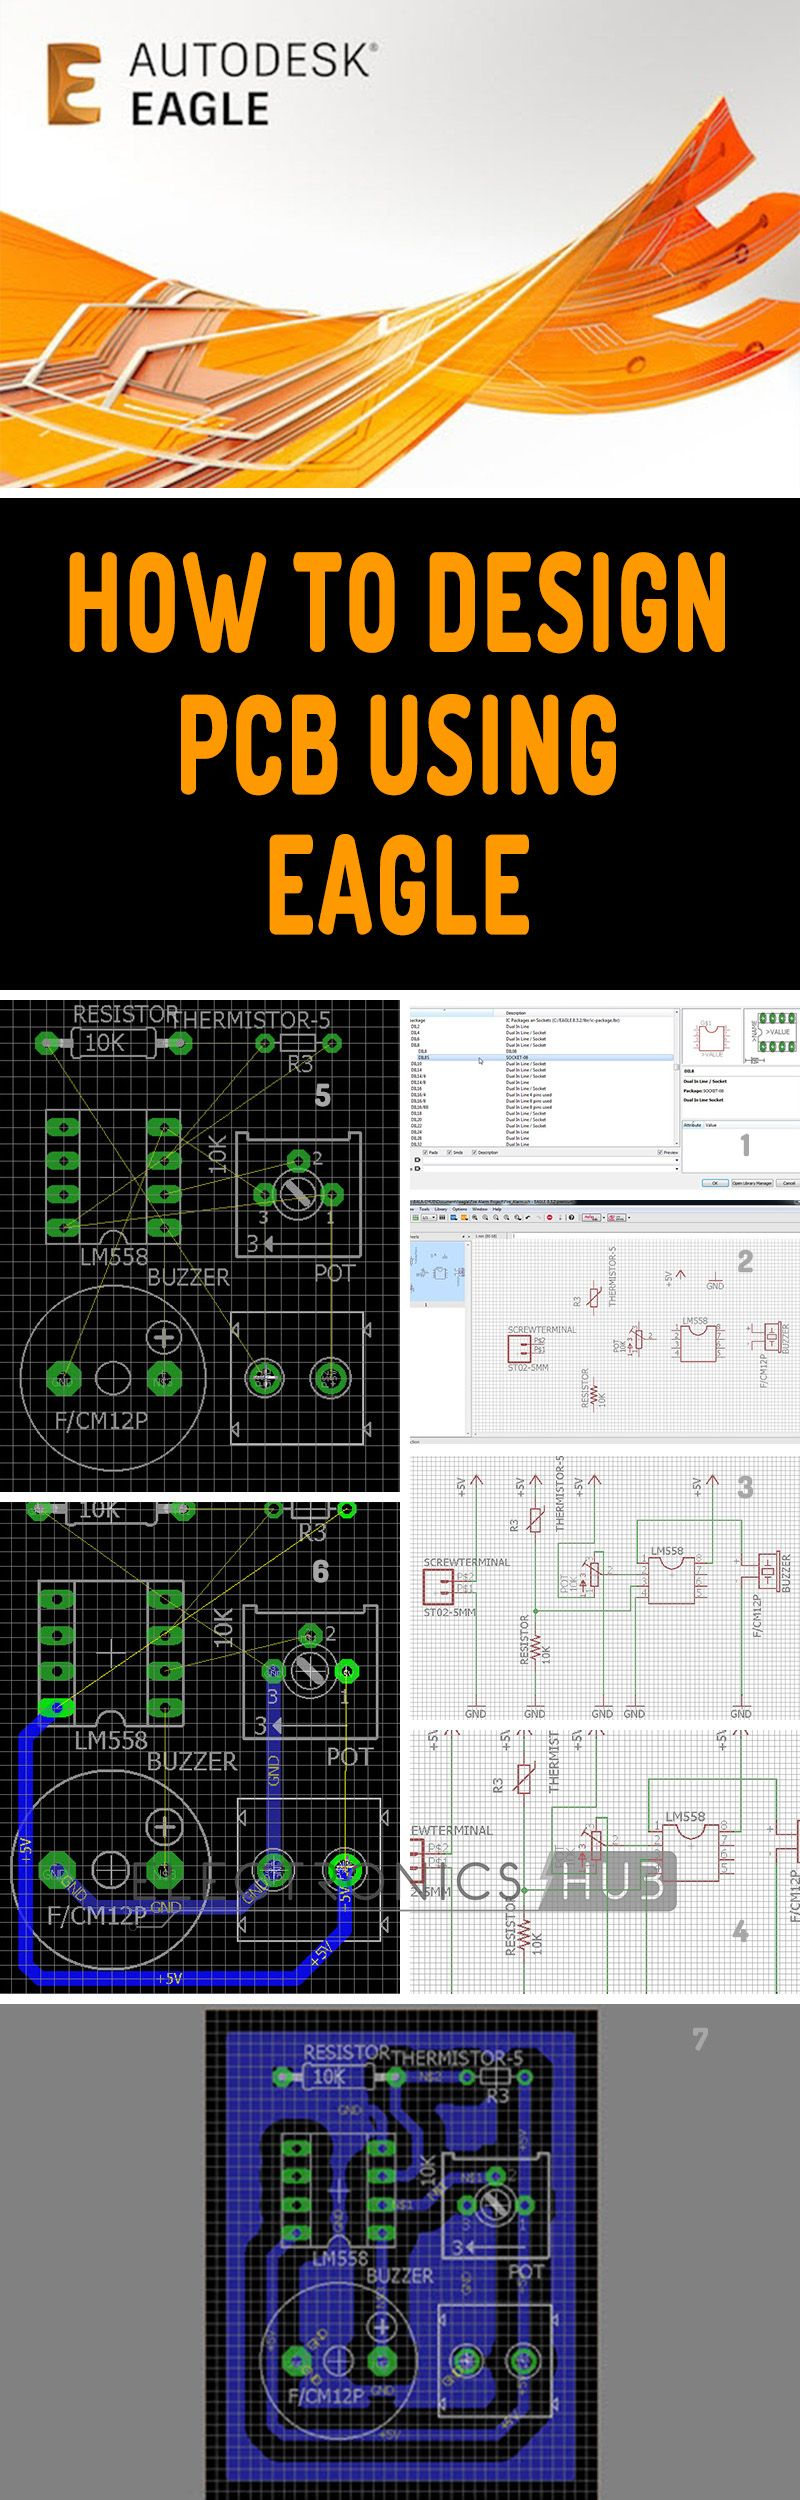 How to Design PCB using Eagle (Printed Circuit Board Layout) | Eagle ...